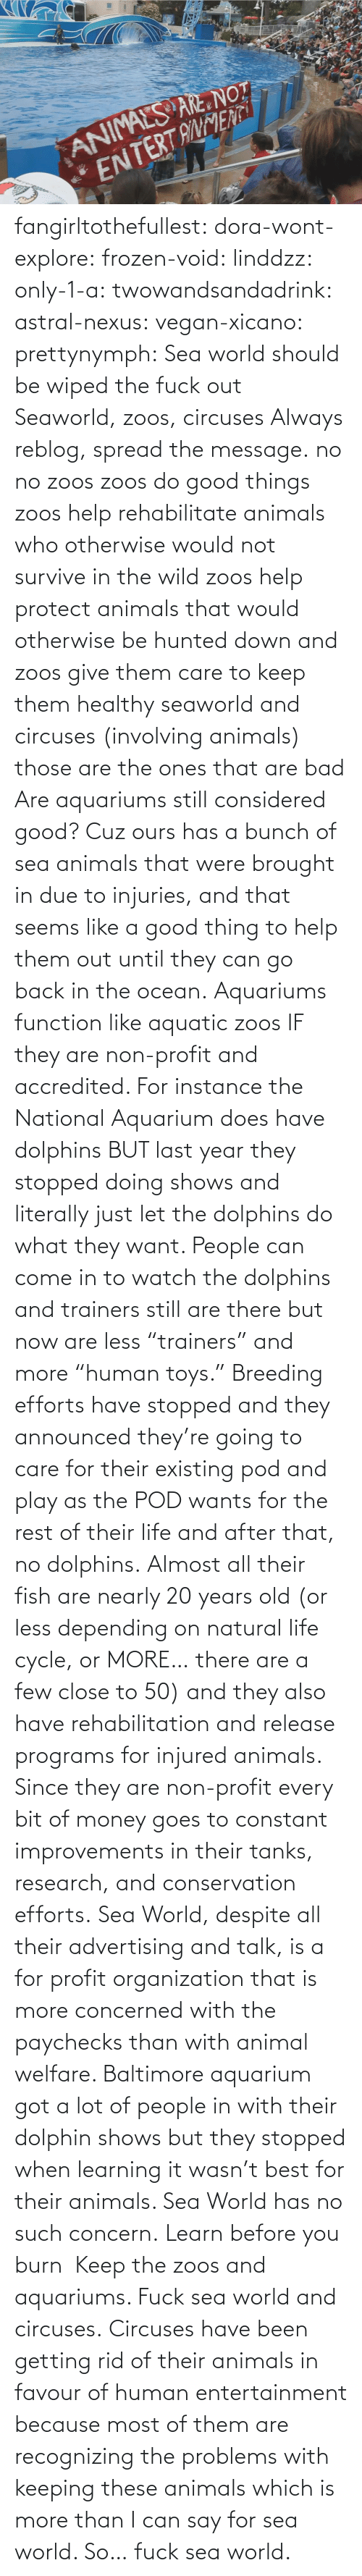 "A Few: fangirltothefullest:  dora-wont-explore:  frozen-void:  linddzz:  only-1-a:  twowandsandadrink:  astral-nexus:  vegan-xicano:  prettynymph:  Sea world should be wiped the fuck out  Seaworld, zoos, circuses  Always reblog, spread the message.  no no zoos zoos do good things zoos help rehabilitate animals who otherwise would not survive in the wild zoos help protect animals that would otherwise be hunted down and zoos give them care to keep them healthy seaworld and circuses (involving animals) those are the ones that are bad  Are aquariums still considered good? Cuz ours has a bunch of sea animals that were brought in due to injuries, and that seems like a good thing to help them out until they can go back in the ocean.  Aquariums function like aquatic zoos IF they are non-profit and accredited. For instance the National Aquarium does have dolphins BUT last year they stopped doing shows and literally just let the dolphins do what they want. People can come in to watch the dolphins and trainers still are there but now are less ""trainers"" and more ""human toys."" Breeding efforts have stopped and they announced they're going to care for their existing pod and play as the POD wants for the rest of their life and after that, no dolphins. Almost all their fish are nearly 20 years old (or less depending on natural life cycle, or MORE… there are a few close to 50) and they also have rehabilitation and release programs for injured animals. Since they are non-profit every bit of money goes to constant improvements in their tanks, research, and conservation efforts. Sea World, despite all their advertising and talk, is a for profit organization that is more concerned with the paychecks than with animal welfare. Baltimore aquarium got a lot of people in with their dolphin shows but they stopped when learning it wasn't best for their animals. Sea World has no such concern.  Learn before you burn   Keep the zoos and aquariums. Fuck sea world and circuses.  Circuses have been getting rid of  their animals in favour of human entertainment because most of them are recognizing the problems with keeping these animals which is more than I can say for sea world. So… fuck sea world."